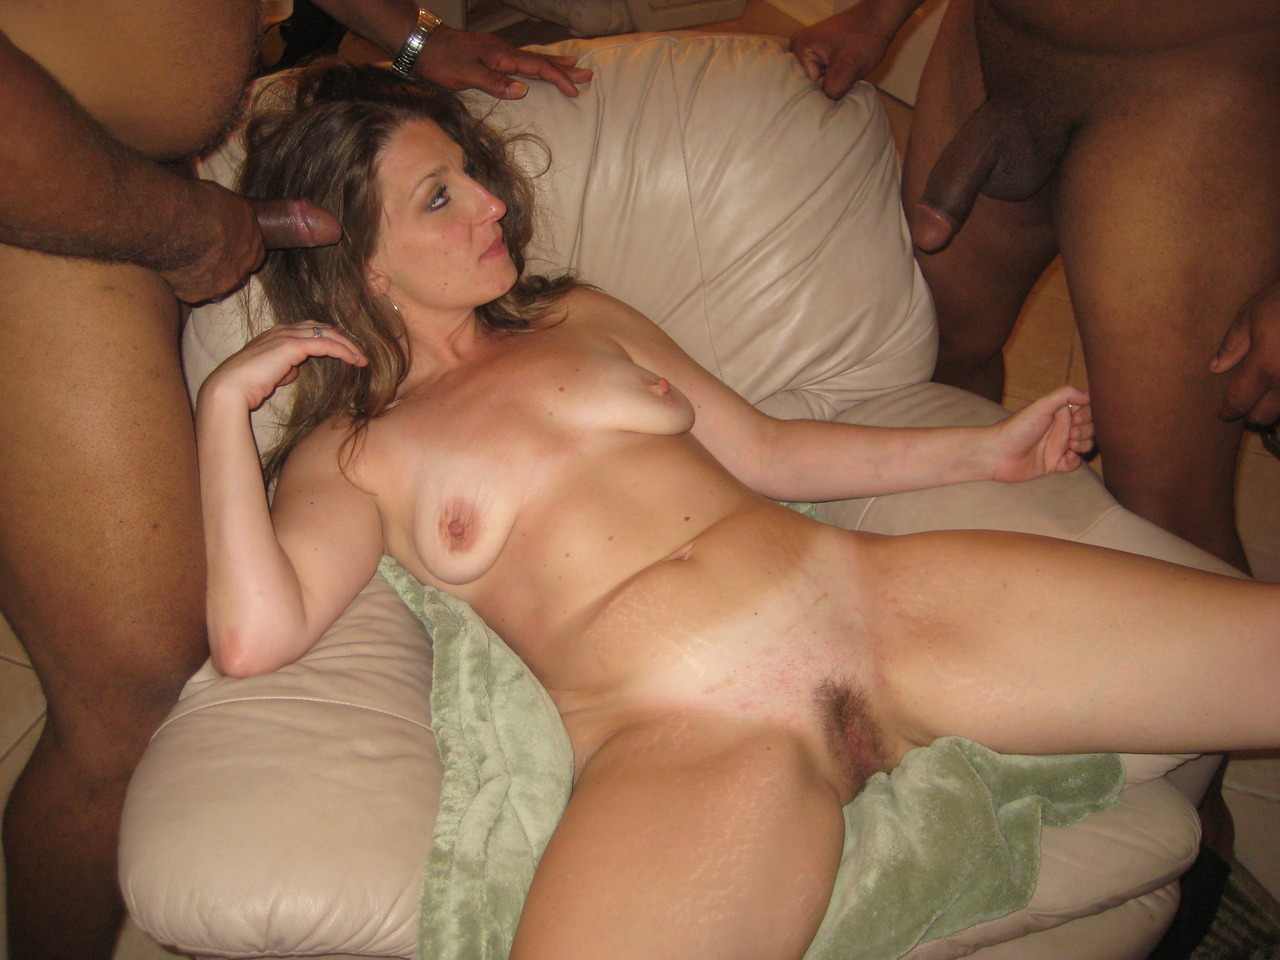 slut wife tumblr Amateur